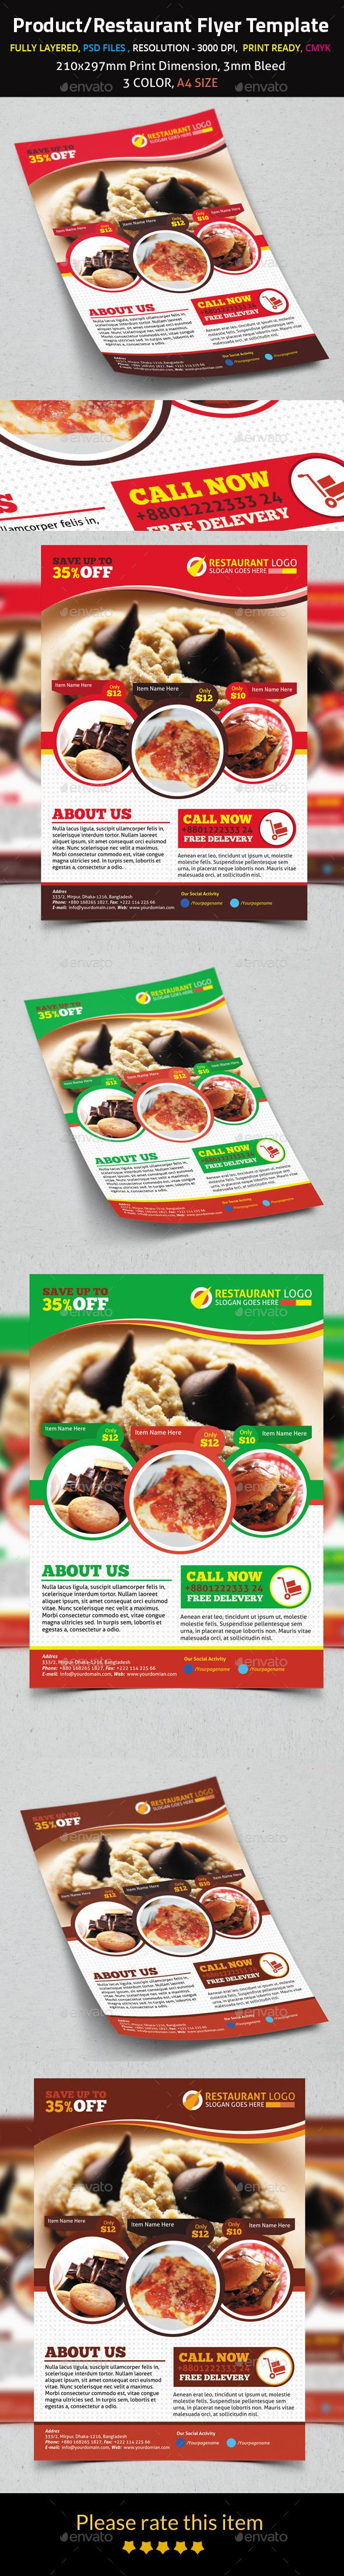 Product/Restaurant Flyer Template #design Download: http://graphicriver.net/item/-productrestaurant-flyer-template/8998348?ref=ksioks